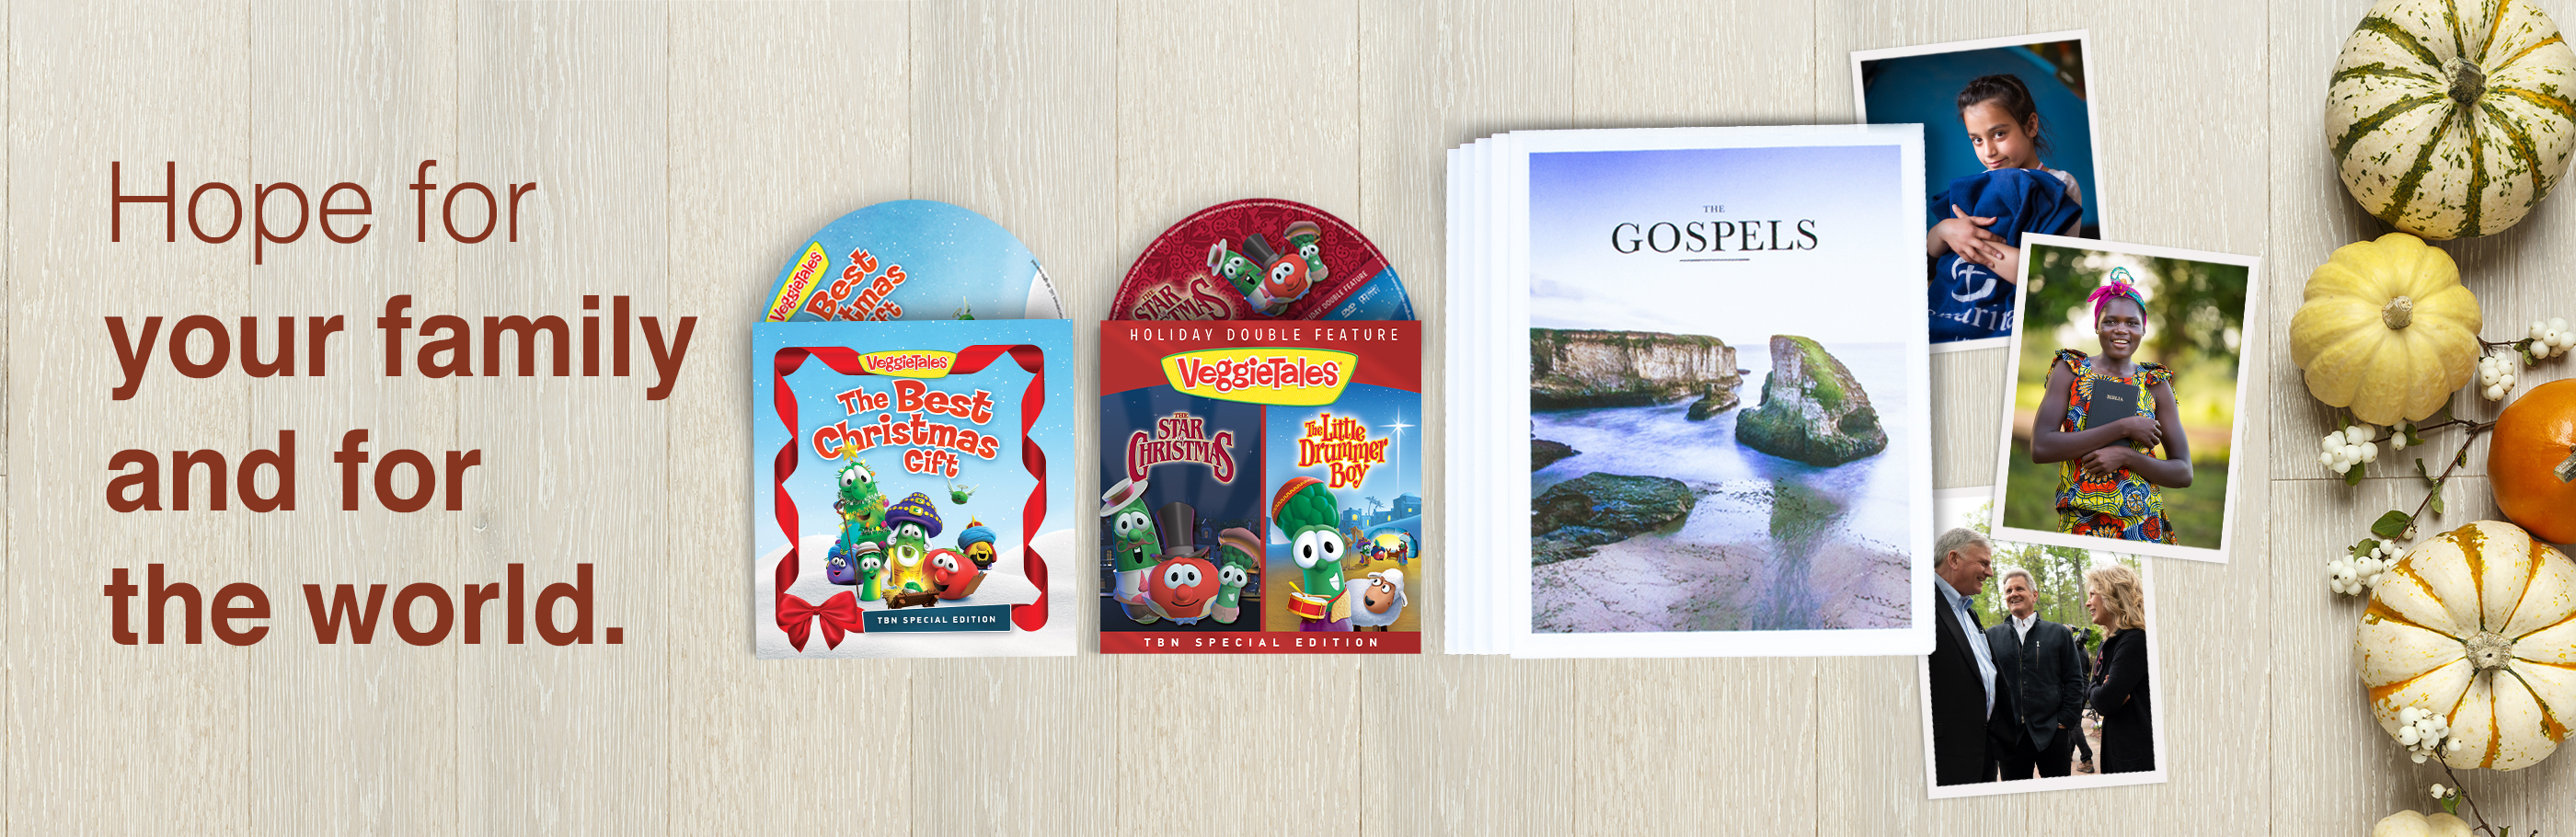 Hope for your family and for the world - VeggieTales The Best Christmas Gift